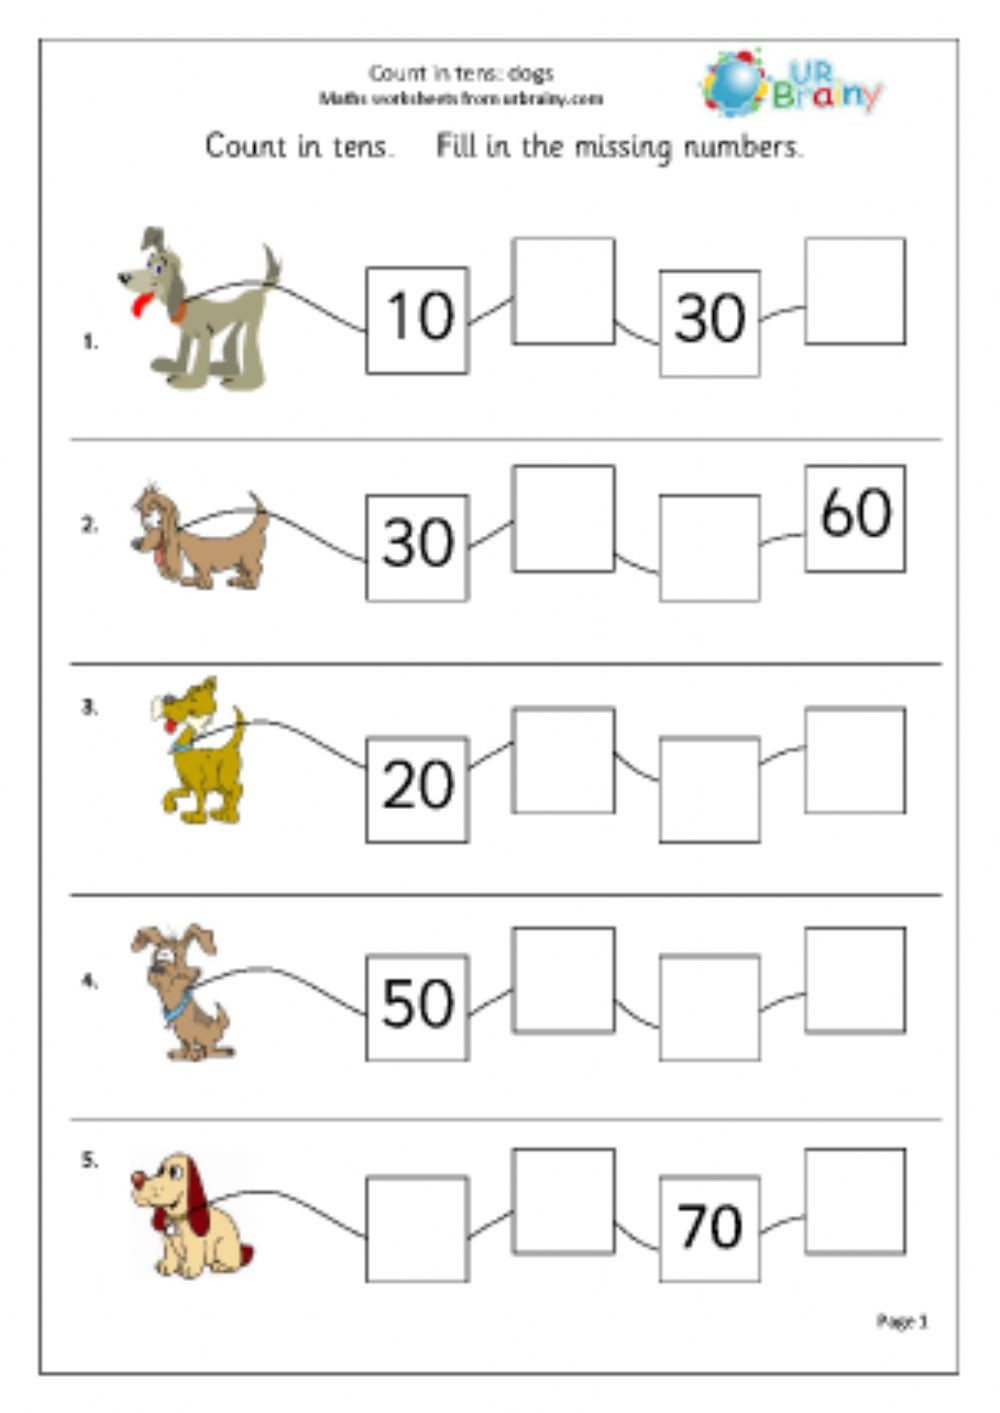 Counting on in 10s Interactive worksheet